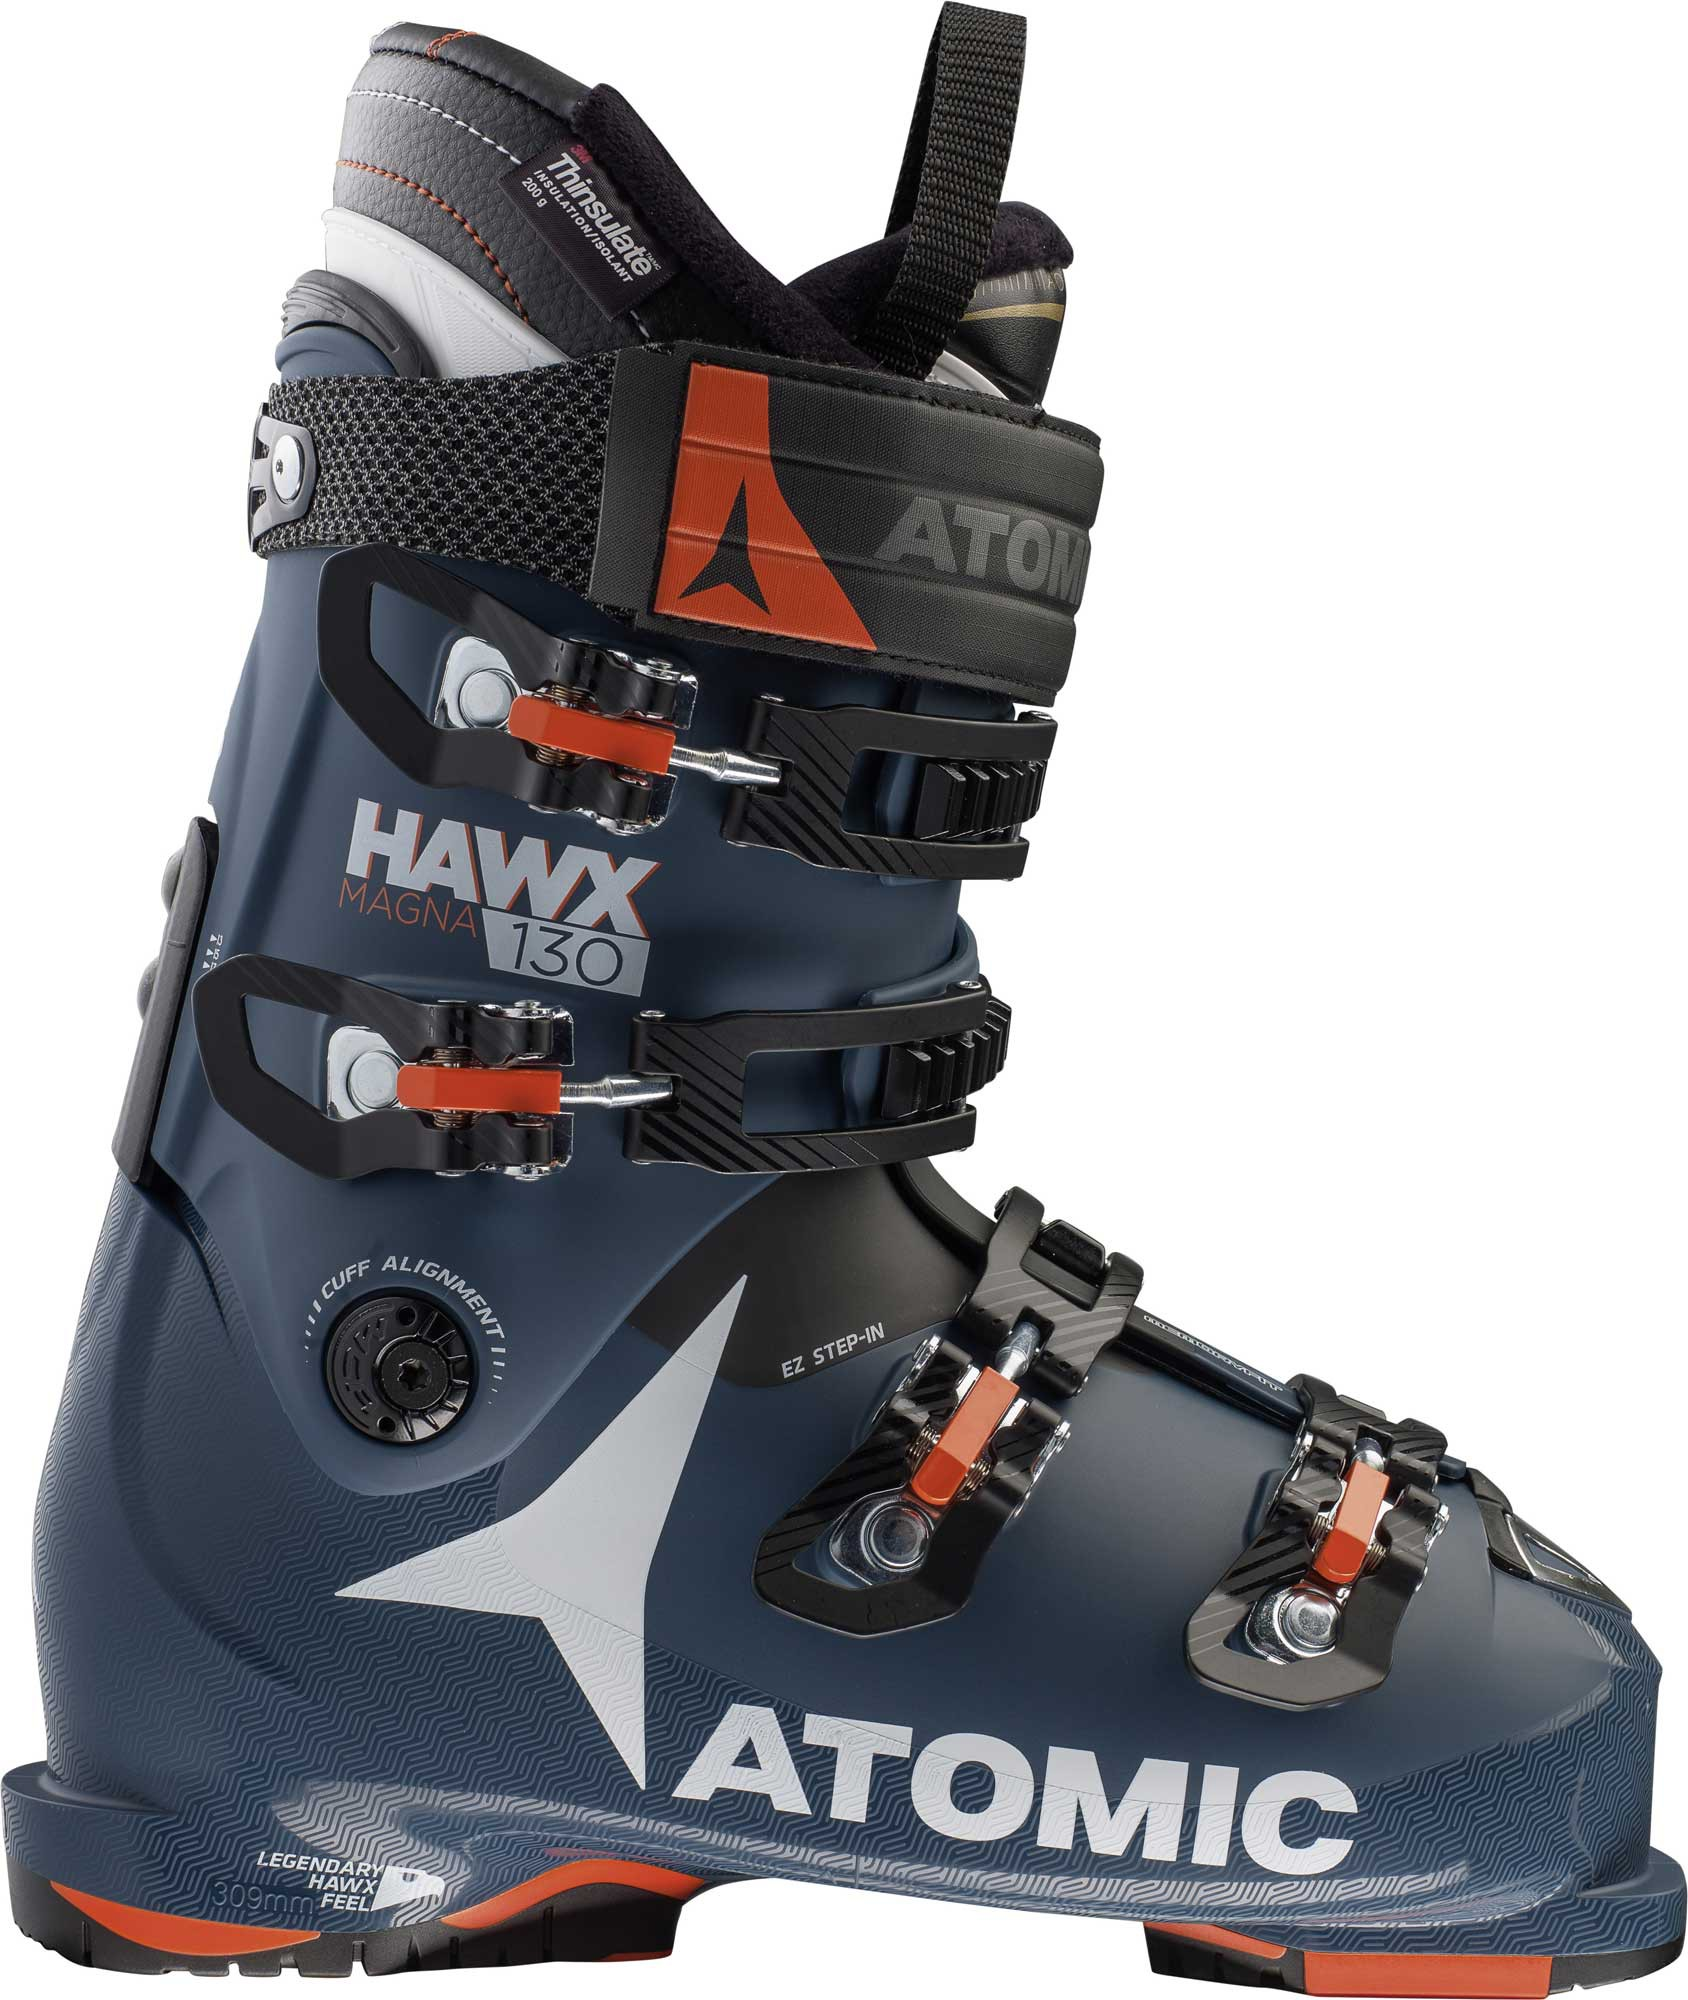 Atomic Hawx Magna 130 - All Mountain Skischuhe - MP 31/31.5